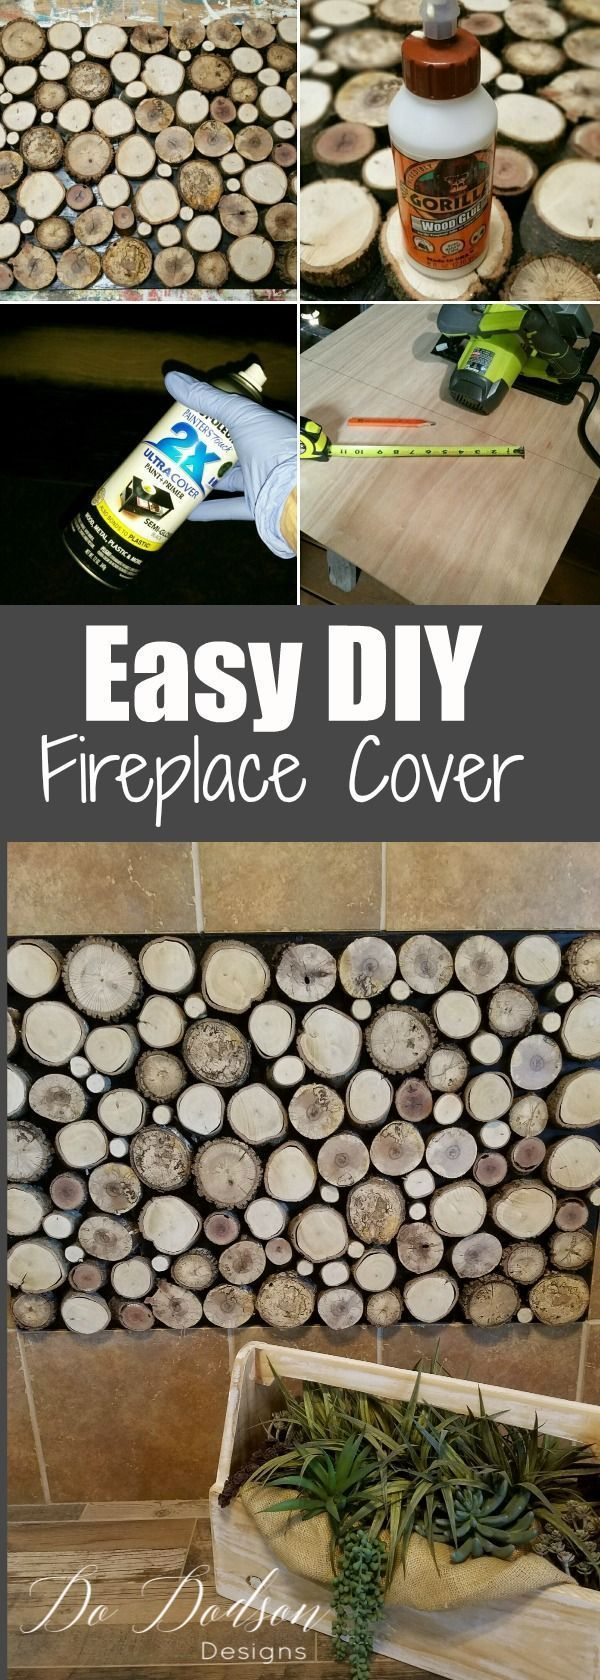 Easy DIY Log Fireplace Cover Ideas